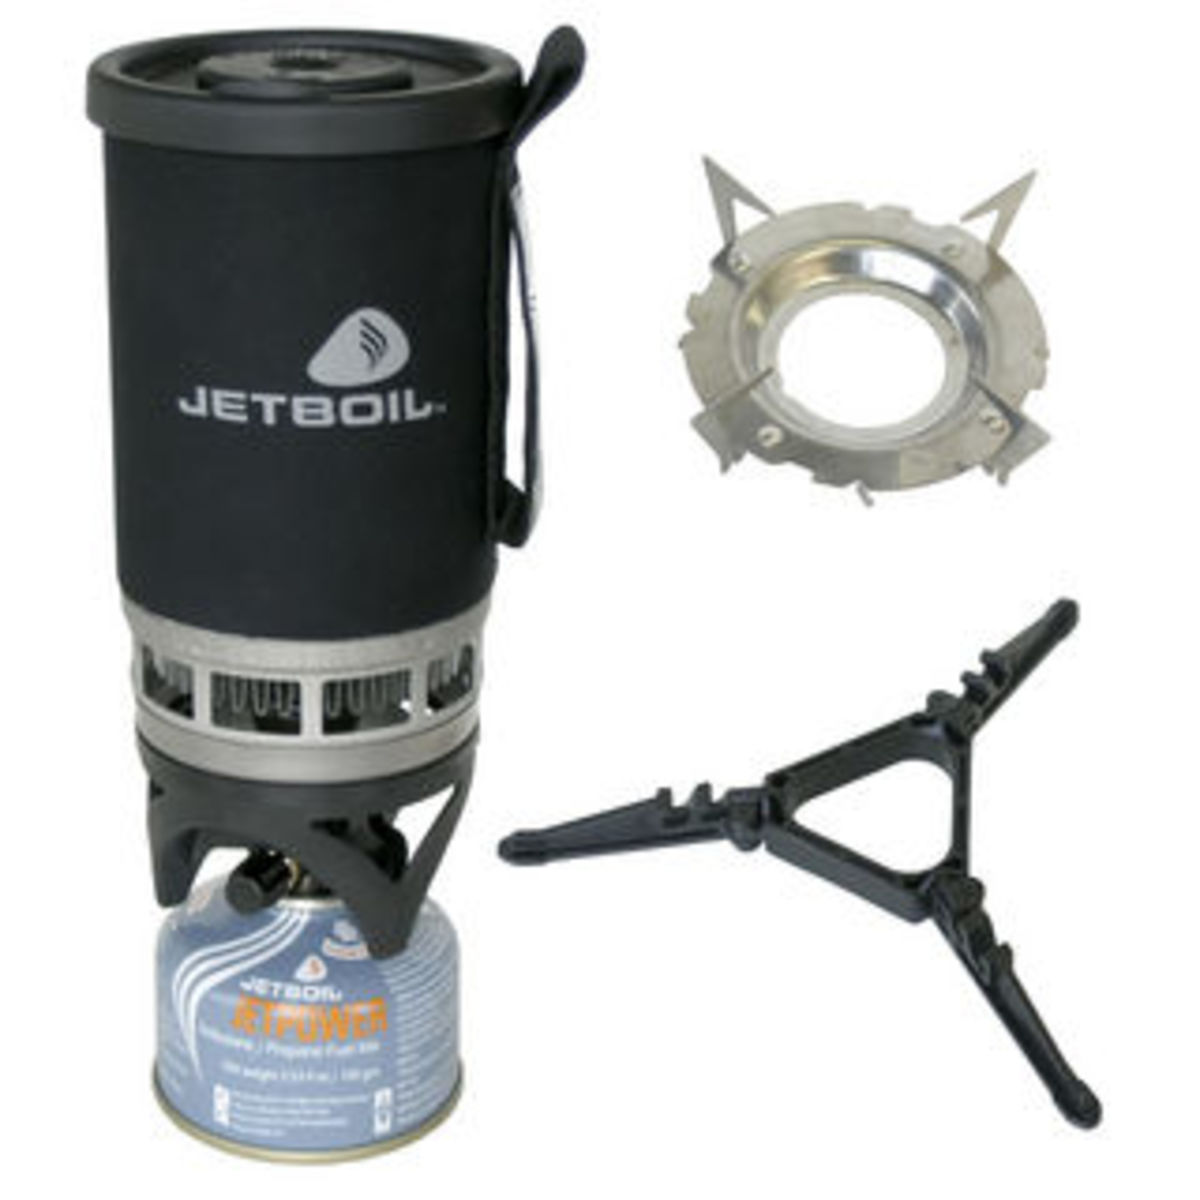 Jetboil Personal Cooking System with Support and Stabilizer